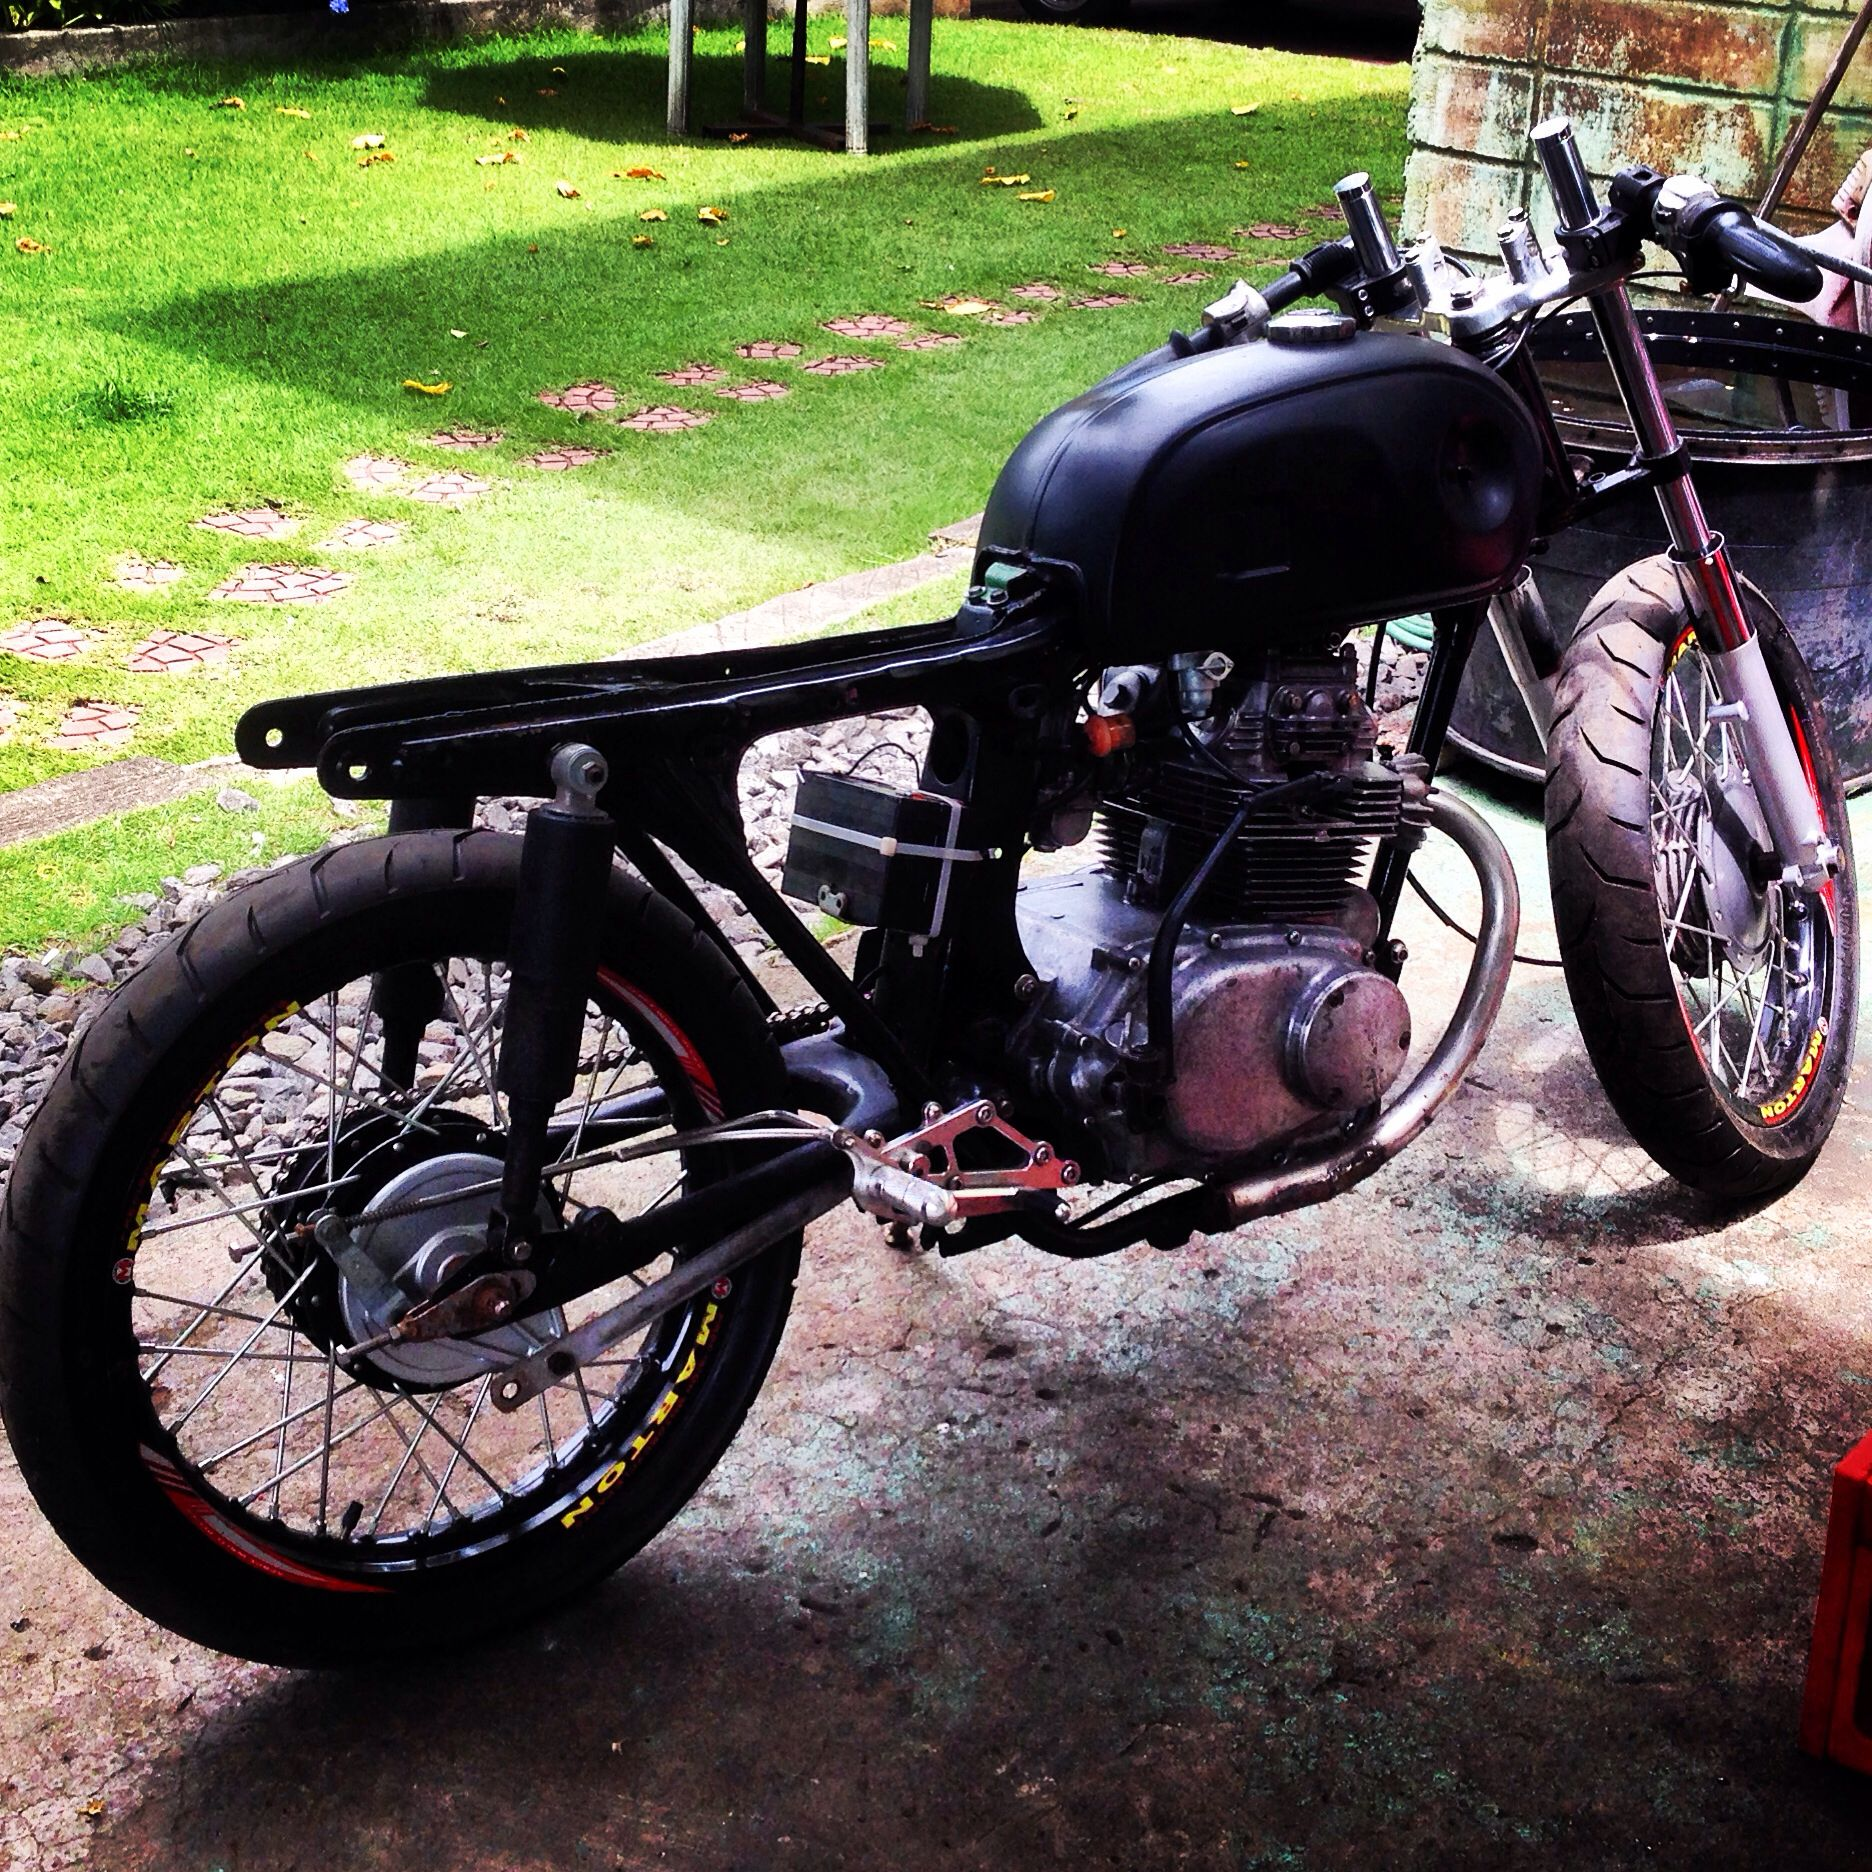 Still Tuning After 8months Cd 175 Cafe Racer